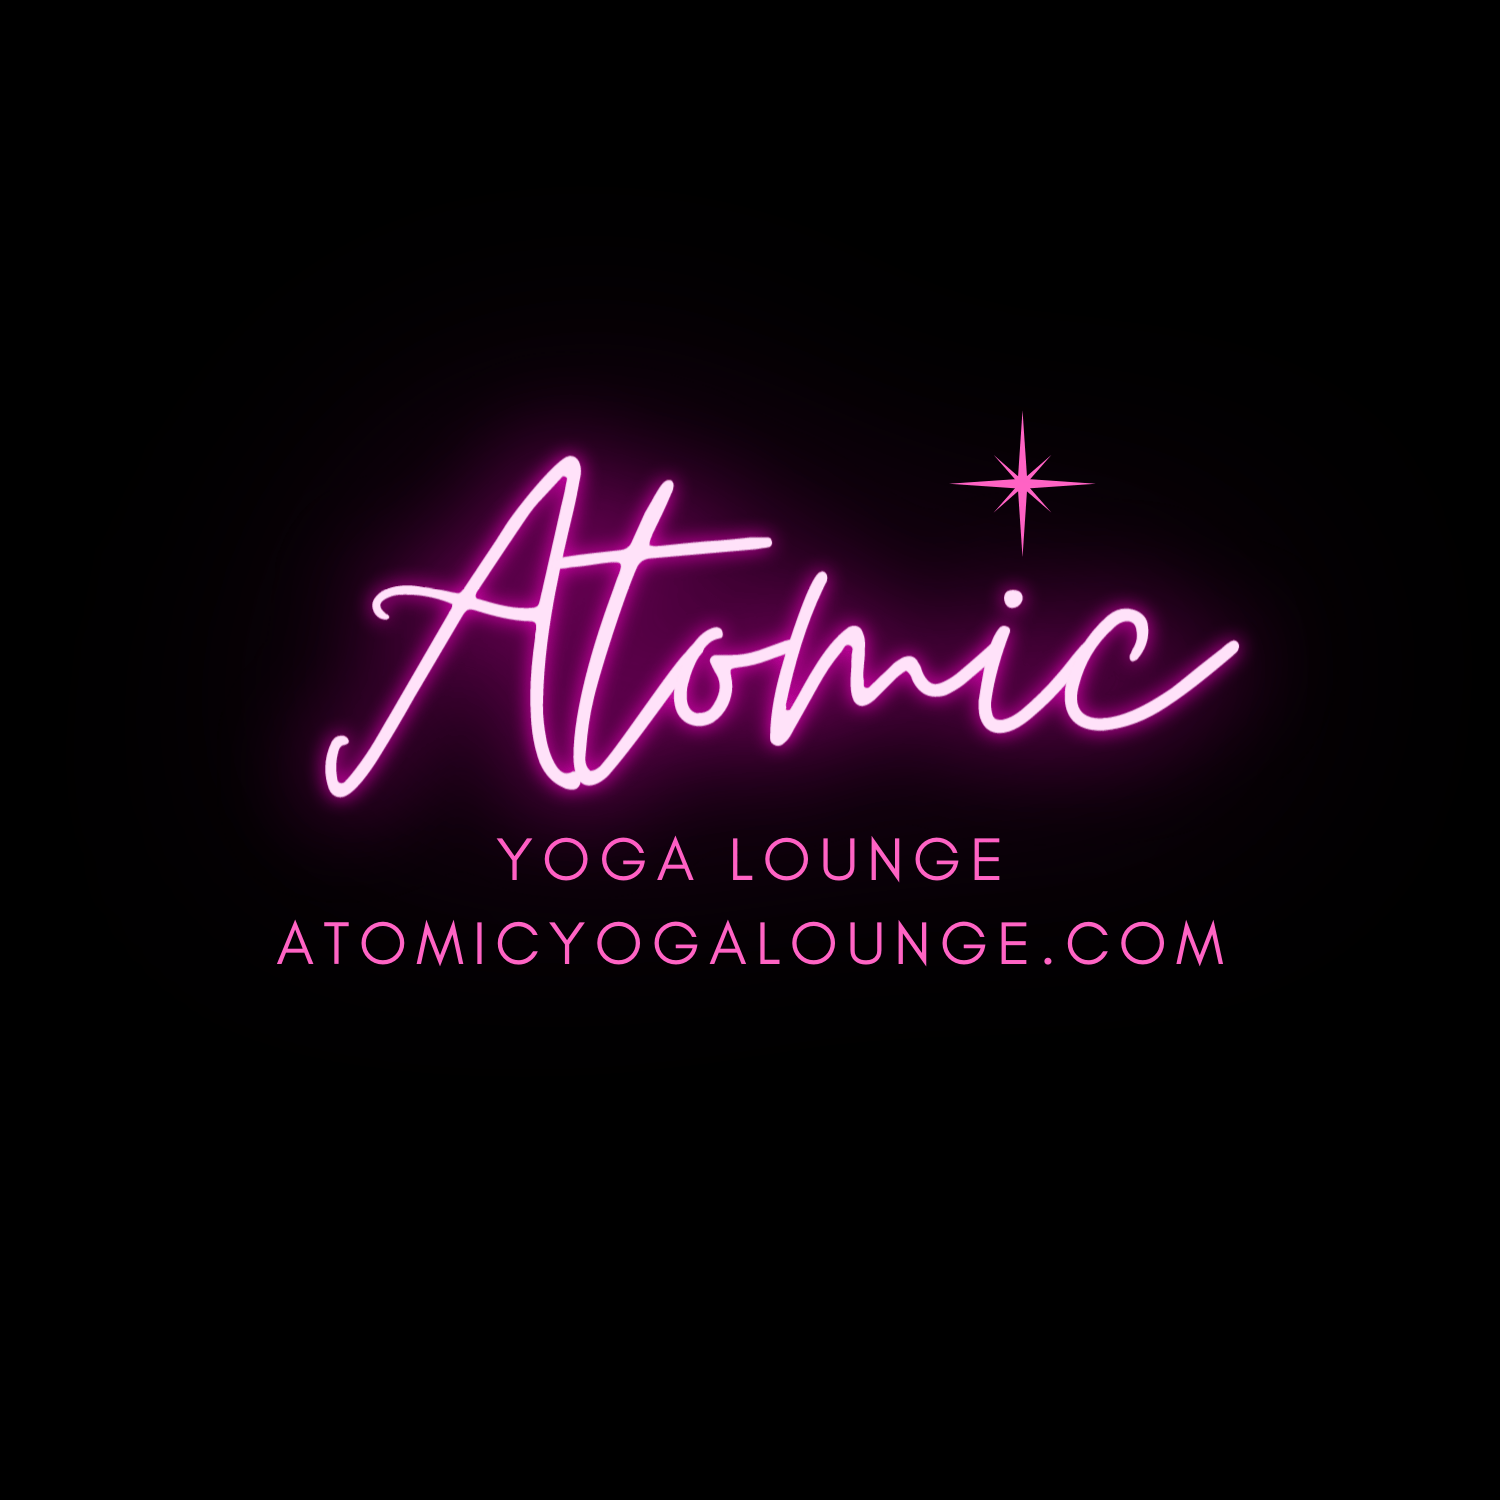 Atomic yoga lounge